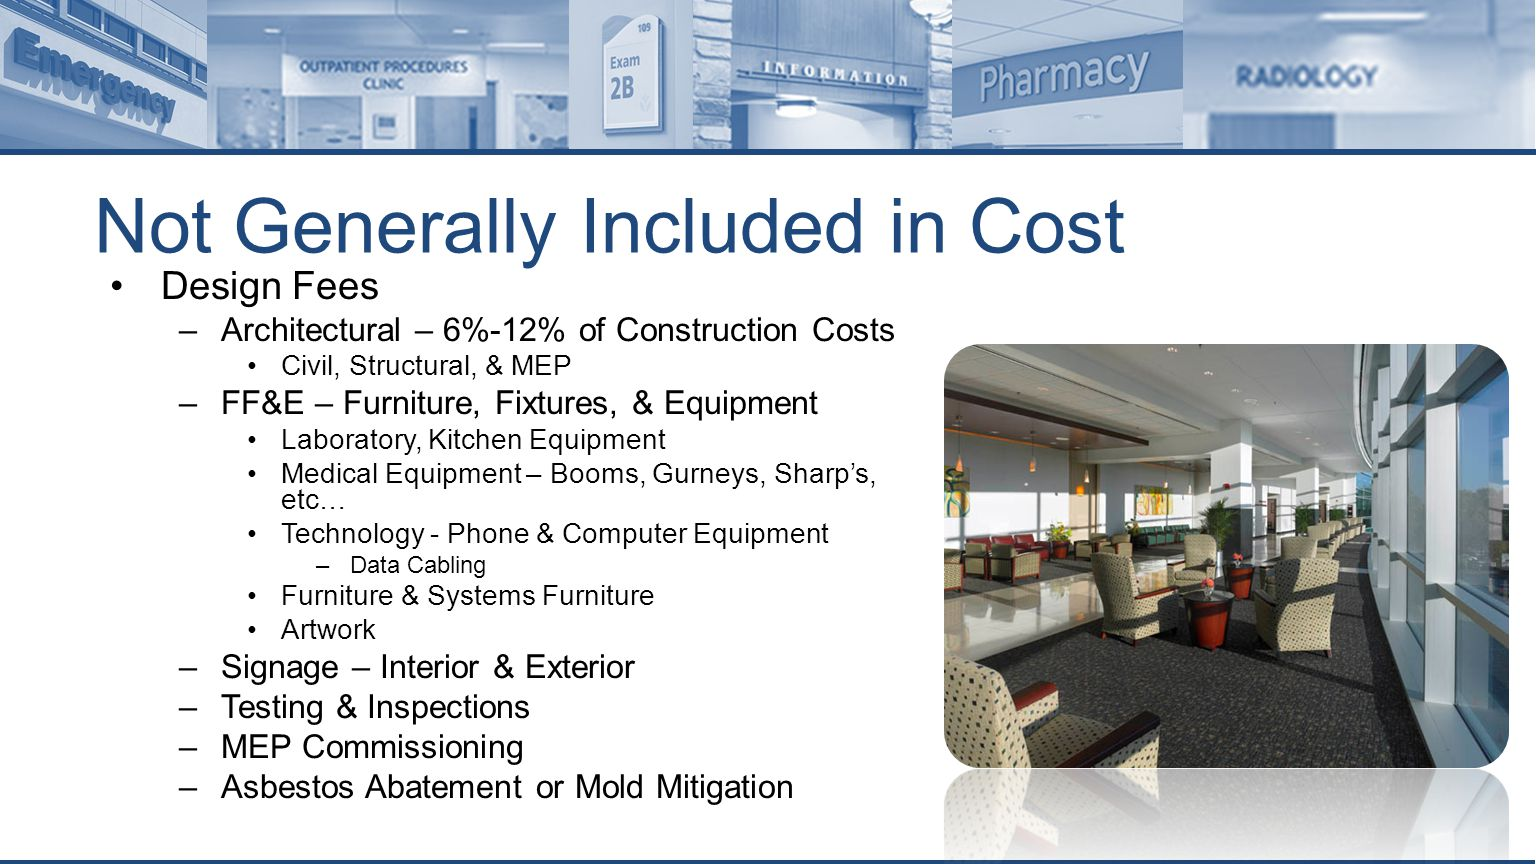 Not Generally Included in Cost Design Fees –Architectural – 6%-12% of Construction Costs Civil, Structural, & MEP –FF&E – Furniture, Fixtures, & Equipment Laboratory, Kitchen Equipment Medical Equipment – Booms, Gurneys, Sharp's, etc… Technology - Phone & Computer Equipment –Data Cabling Furniture & Systems Furniture Artwork –Signage – Interior & Exterior –Testing & Inspections –MEP Commissioning –Asbestos Abatement or Mold Mitigation